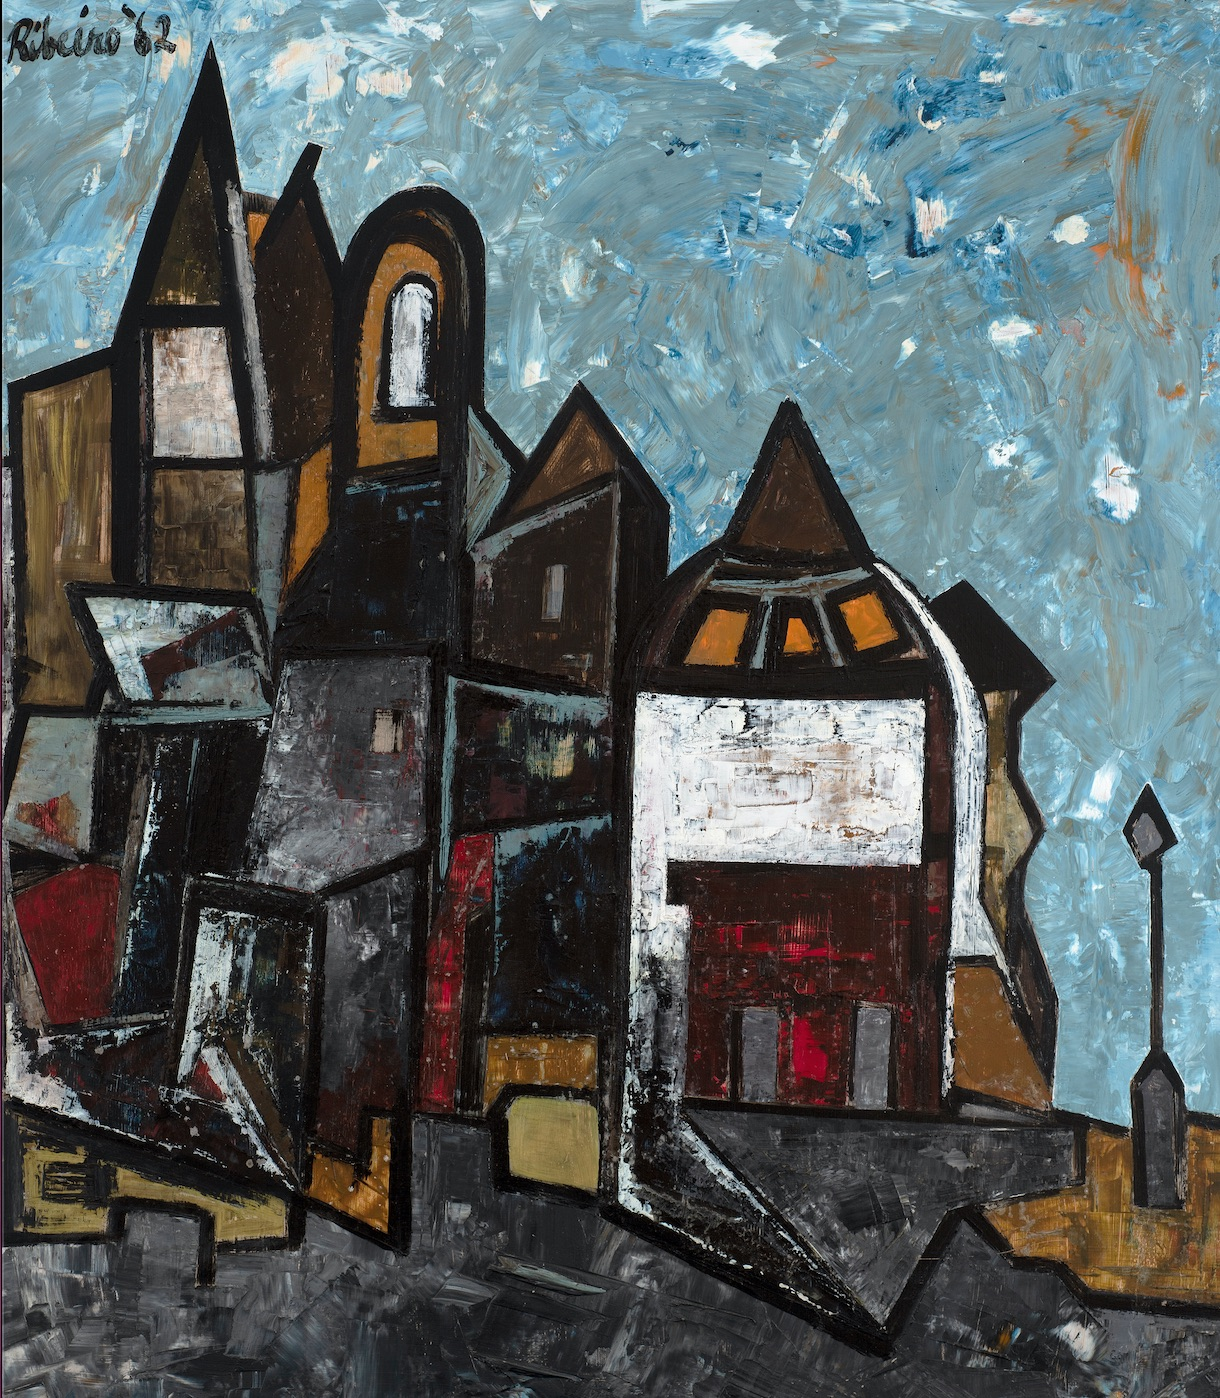 LANCELOT RIBEIRO (1933-2011)